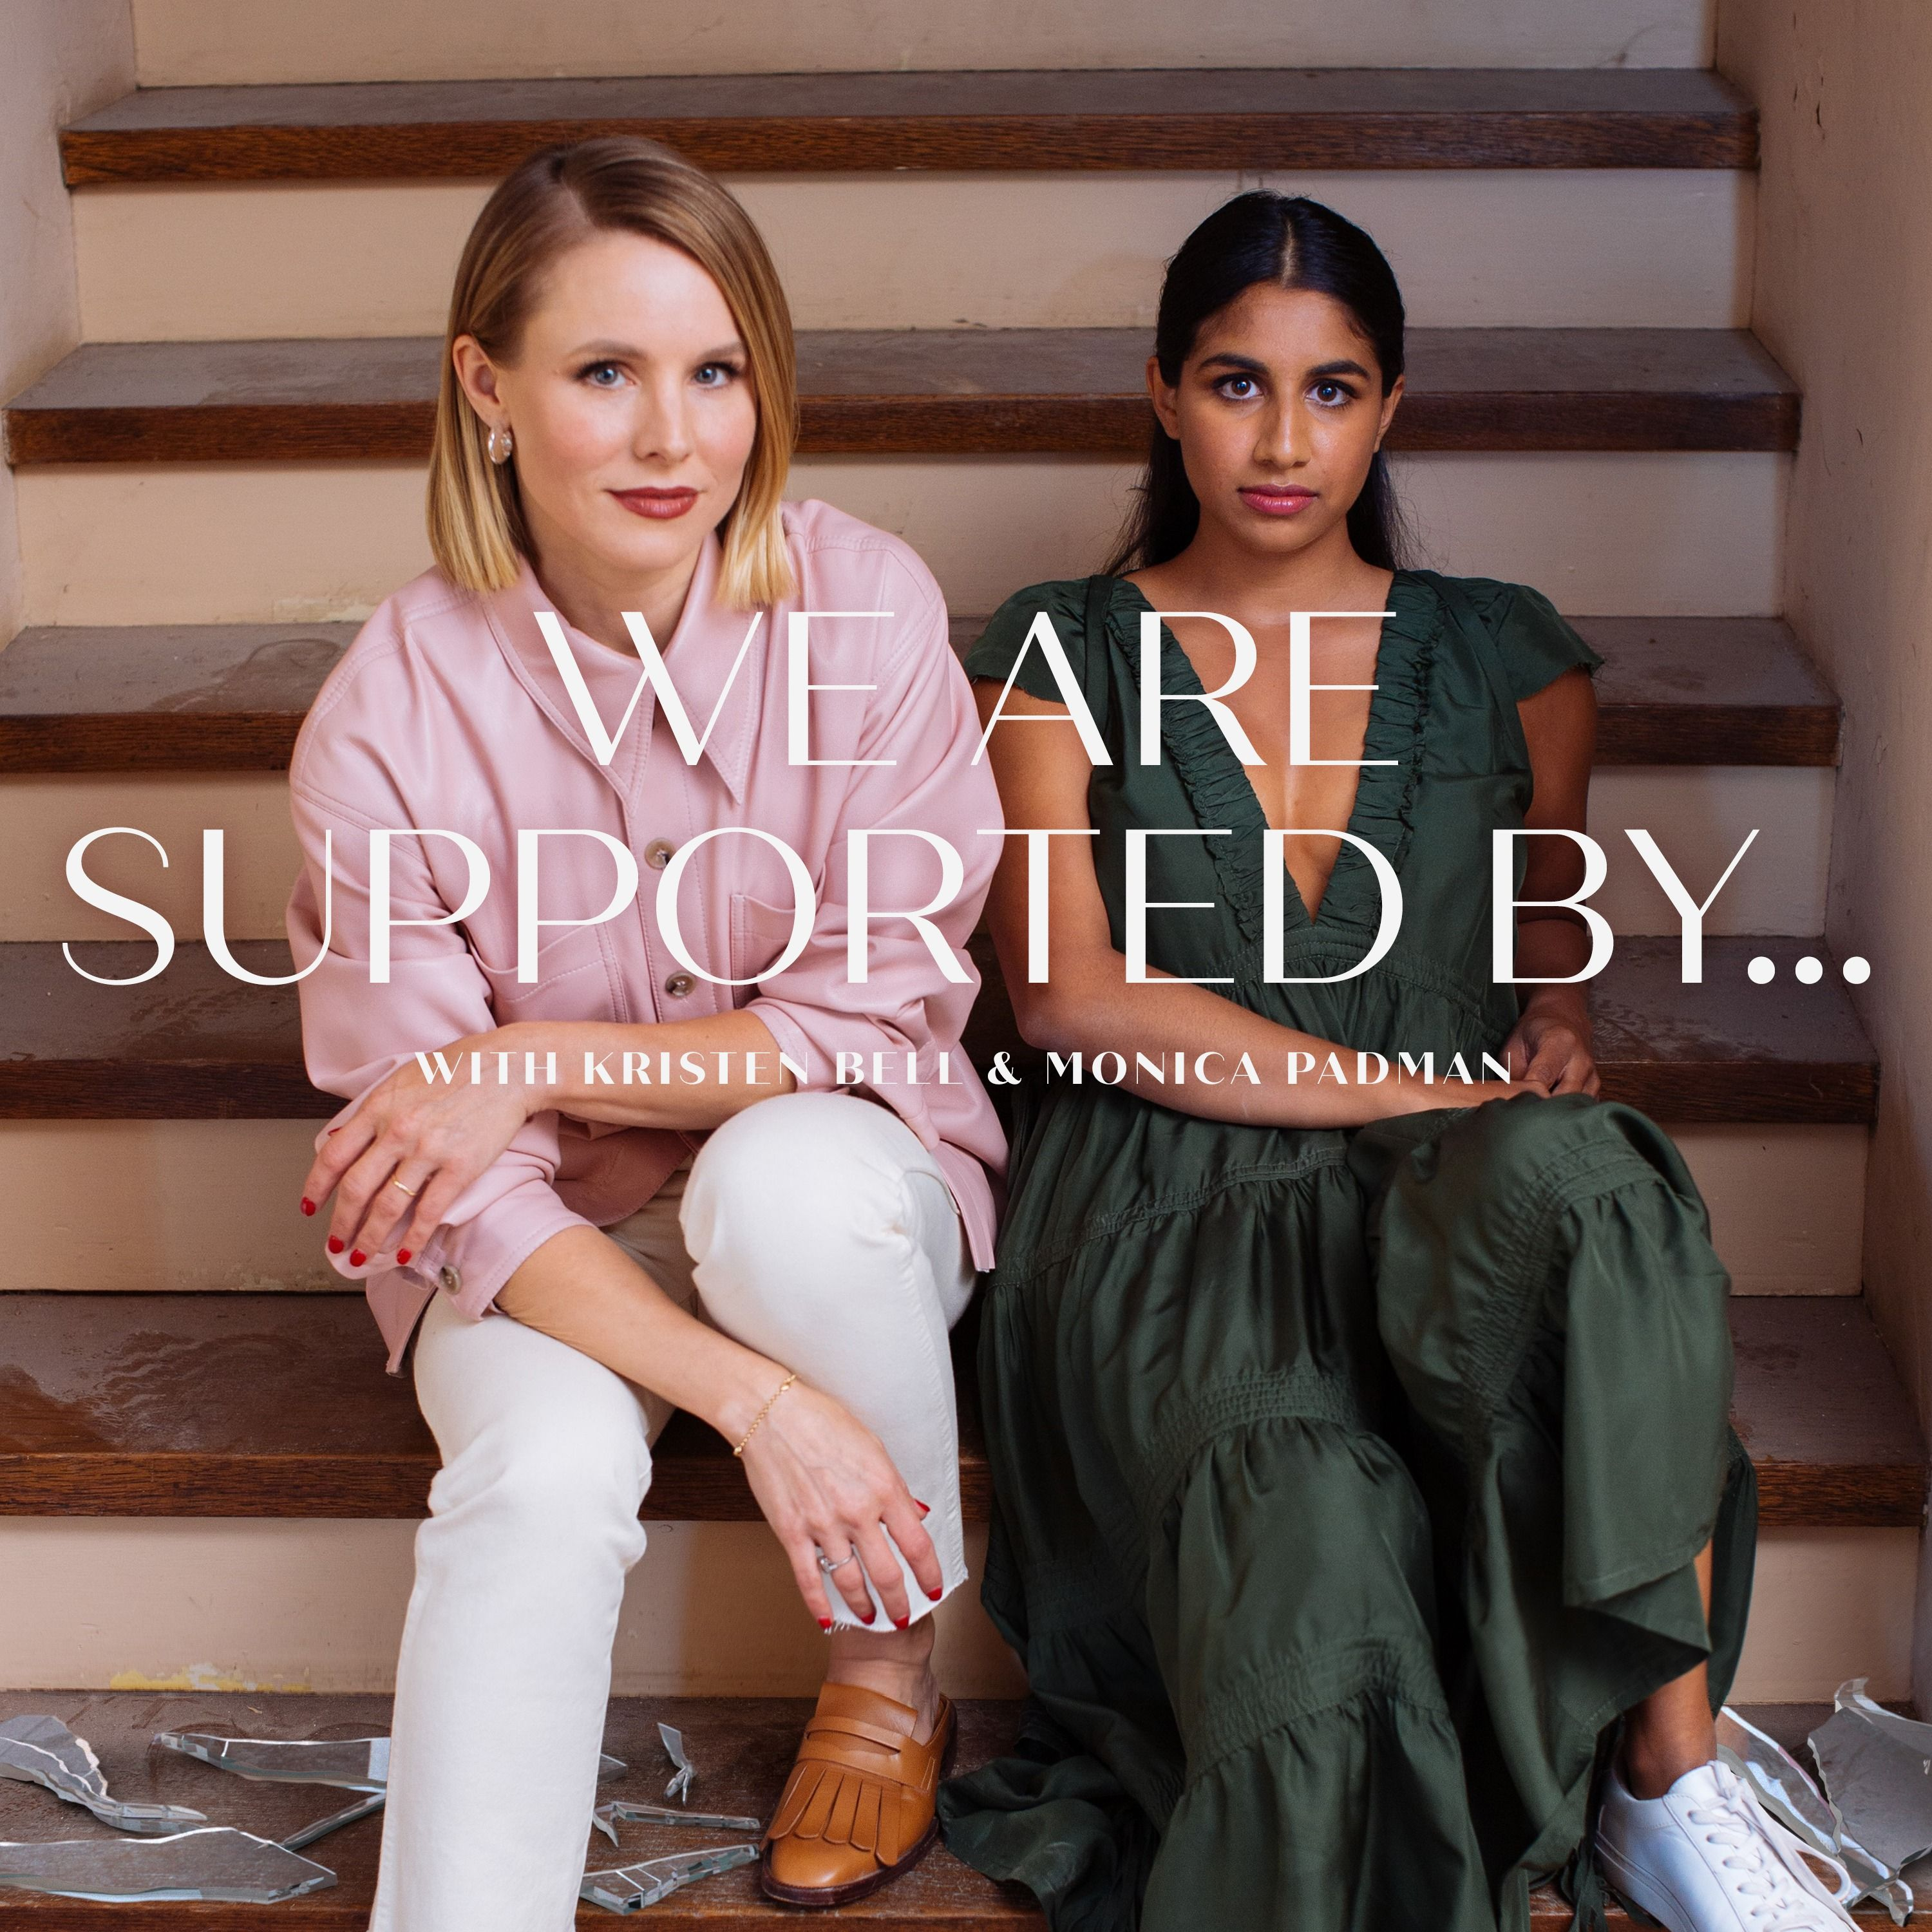 We are supported by... Samantha Power